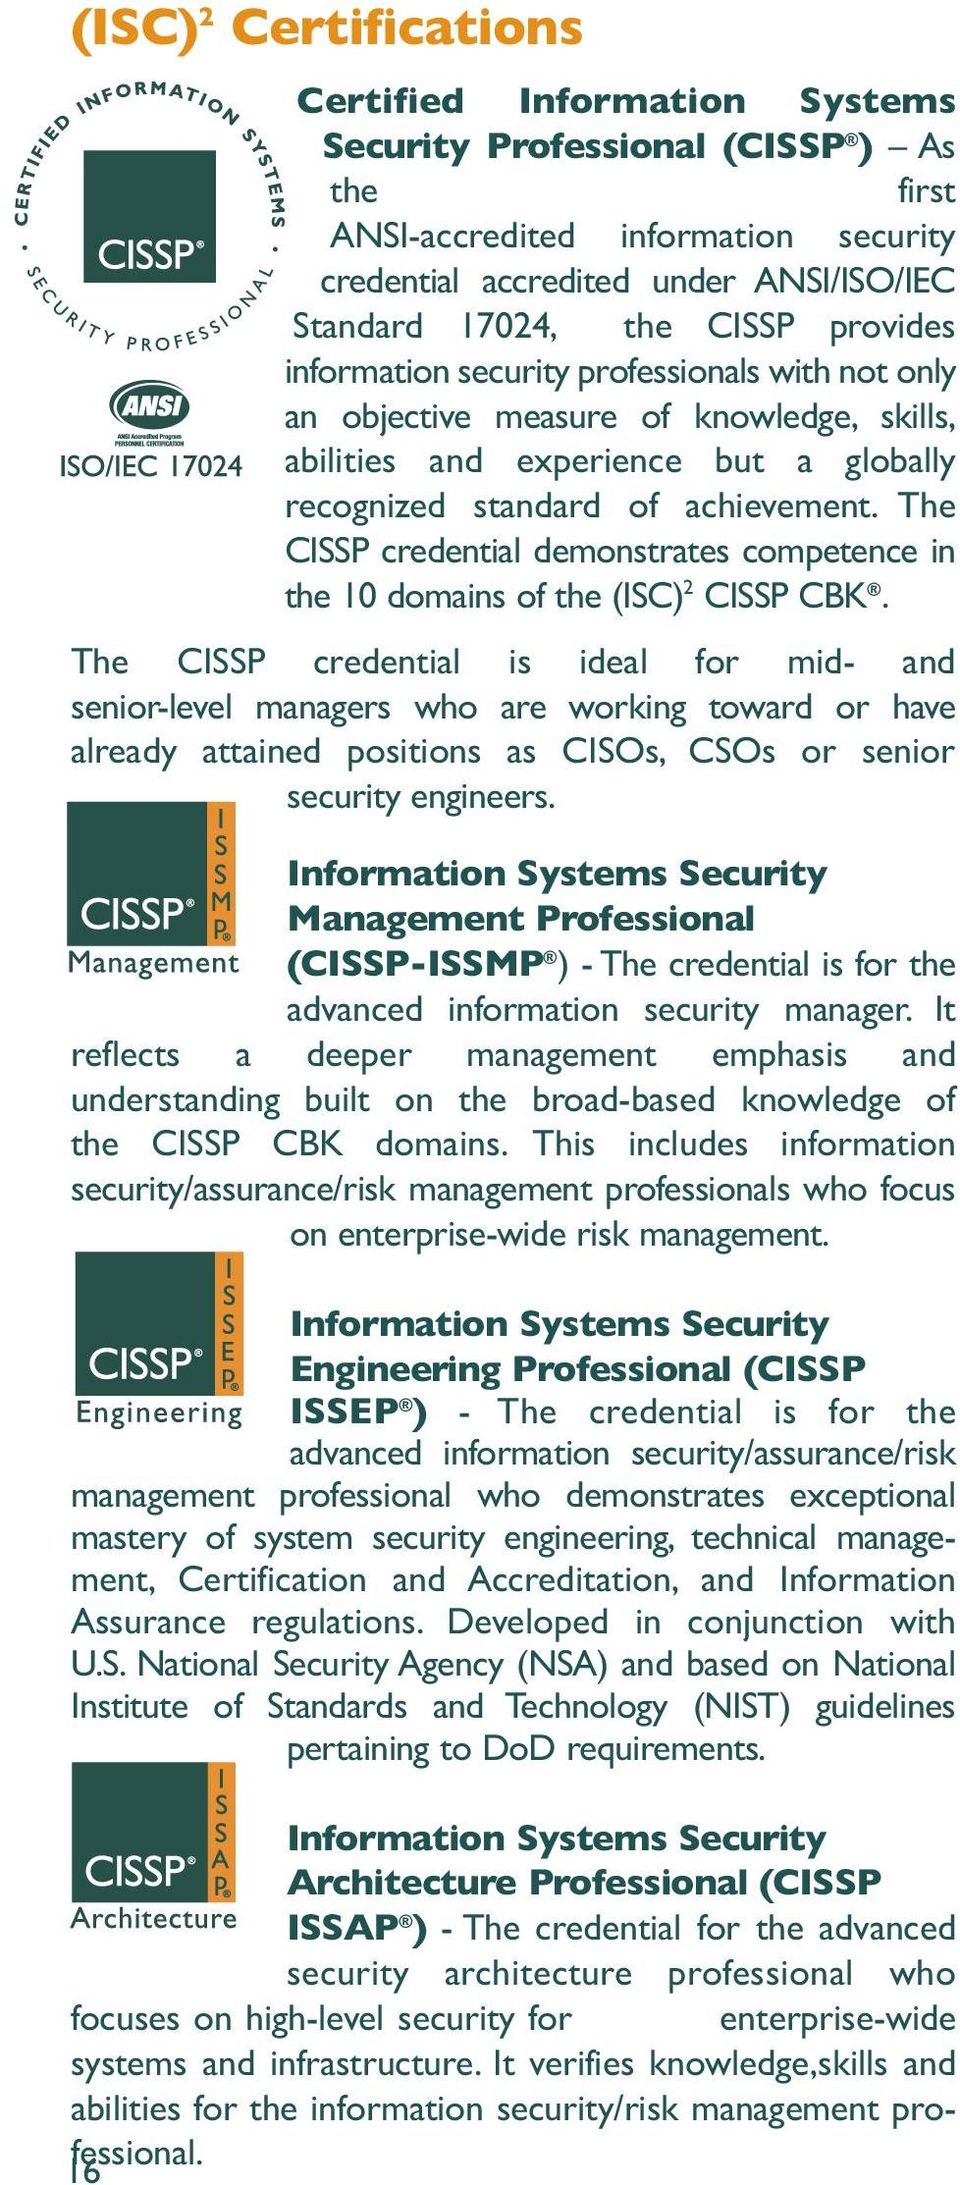 The CISSP credential demonstrates competence in the 10 domains of the (ISC) 2 CISSP CBK.